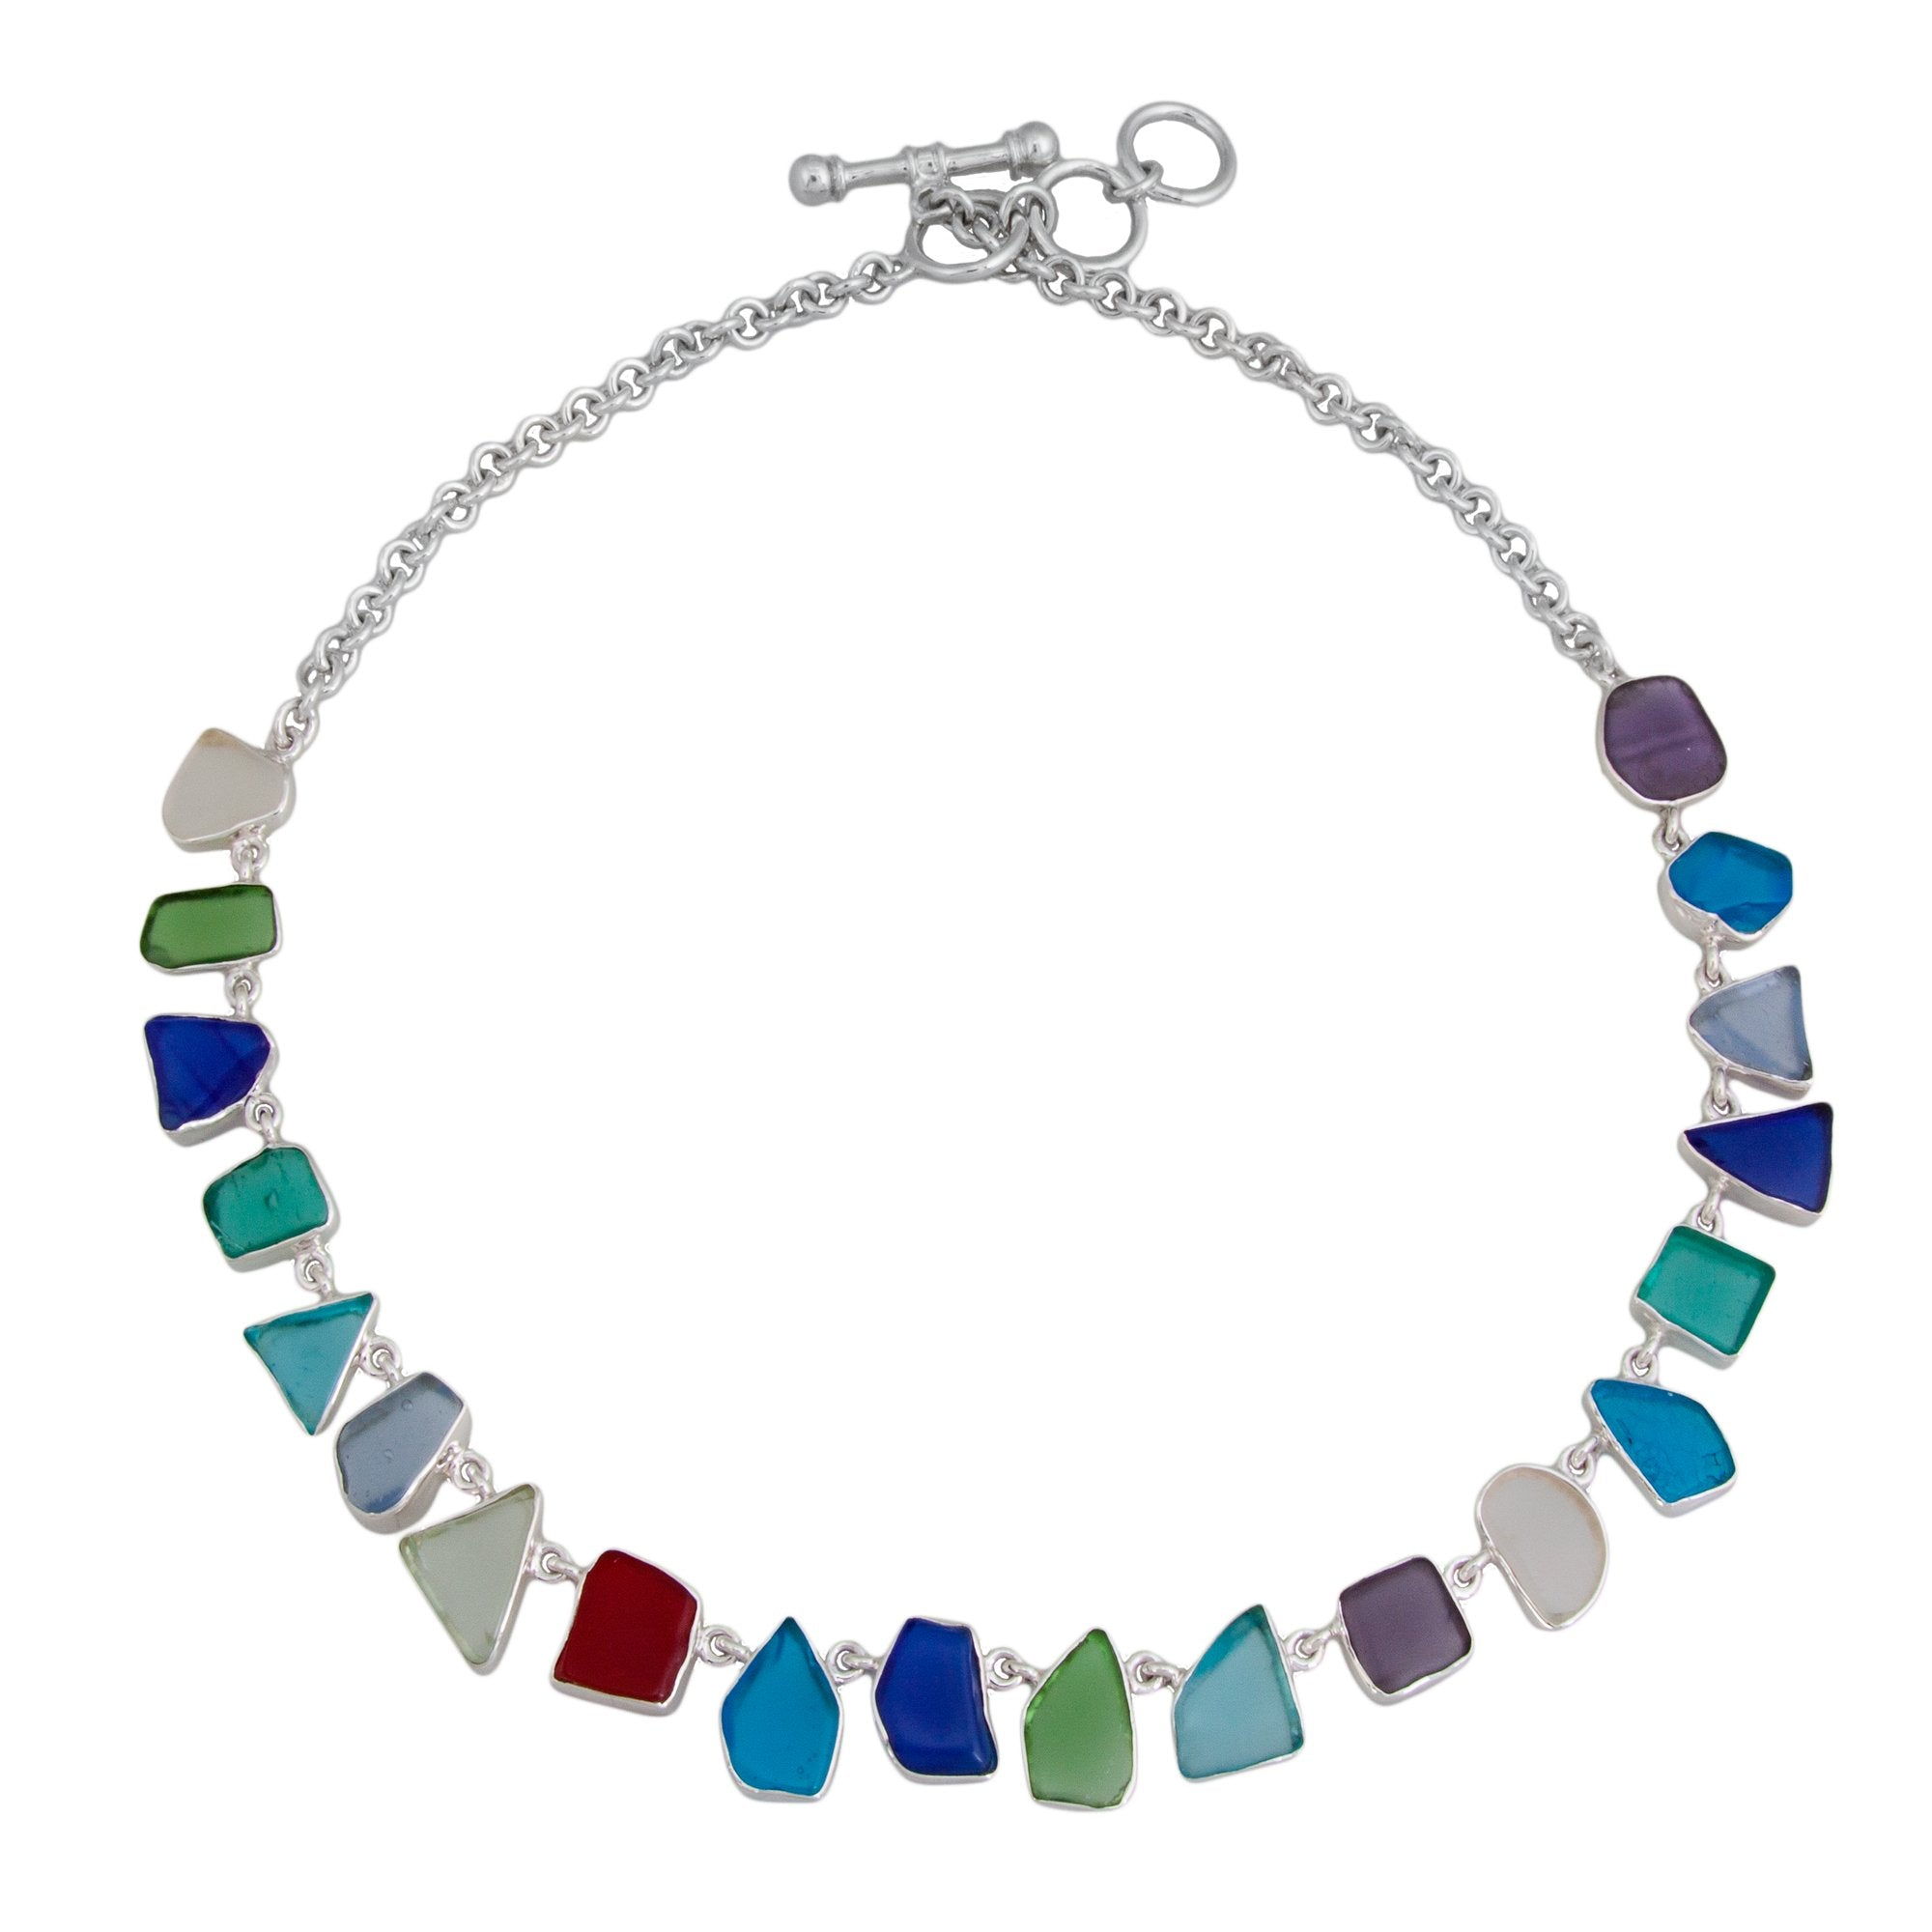 Sterling Silver Recycled Glass Necklace - Small